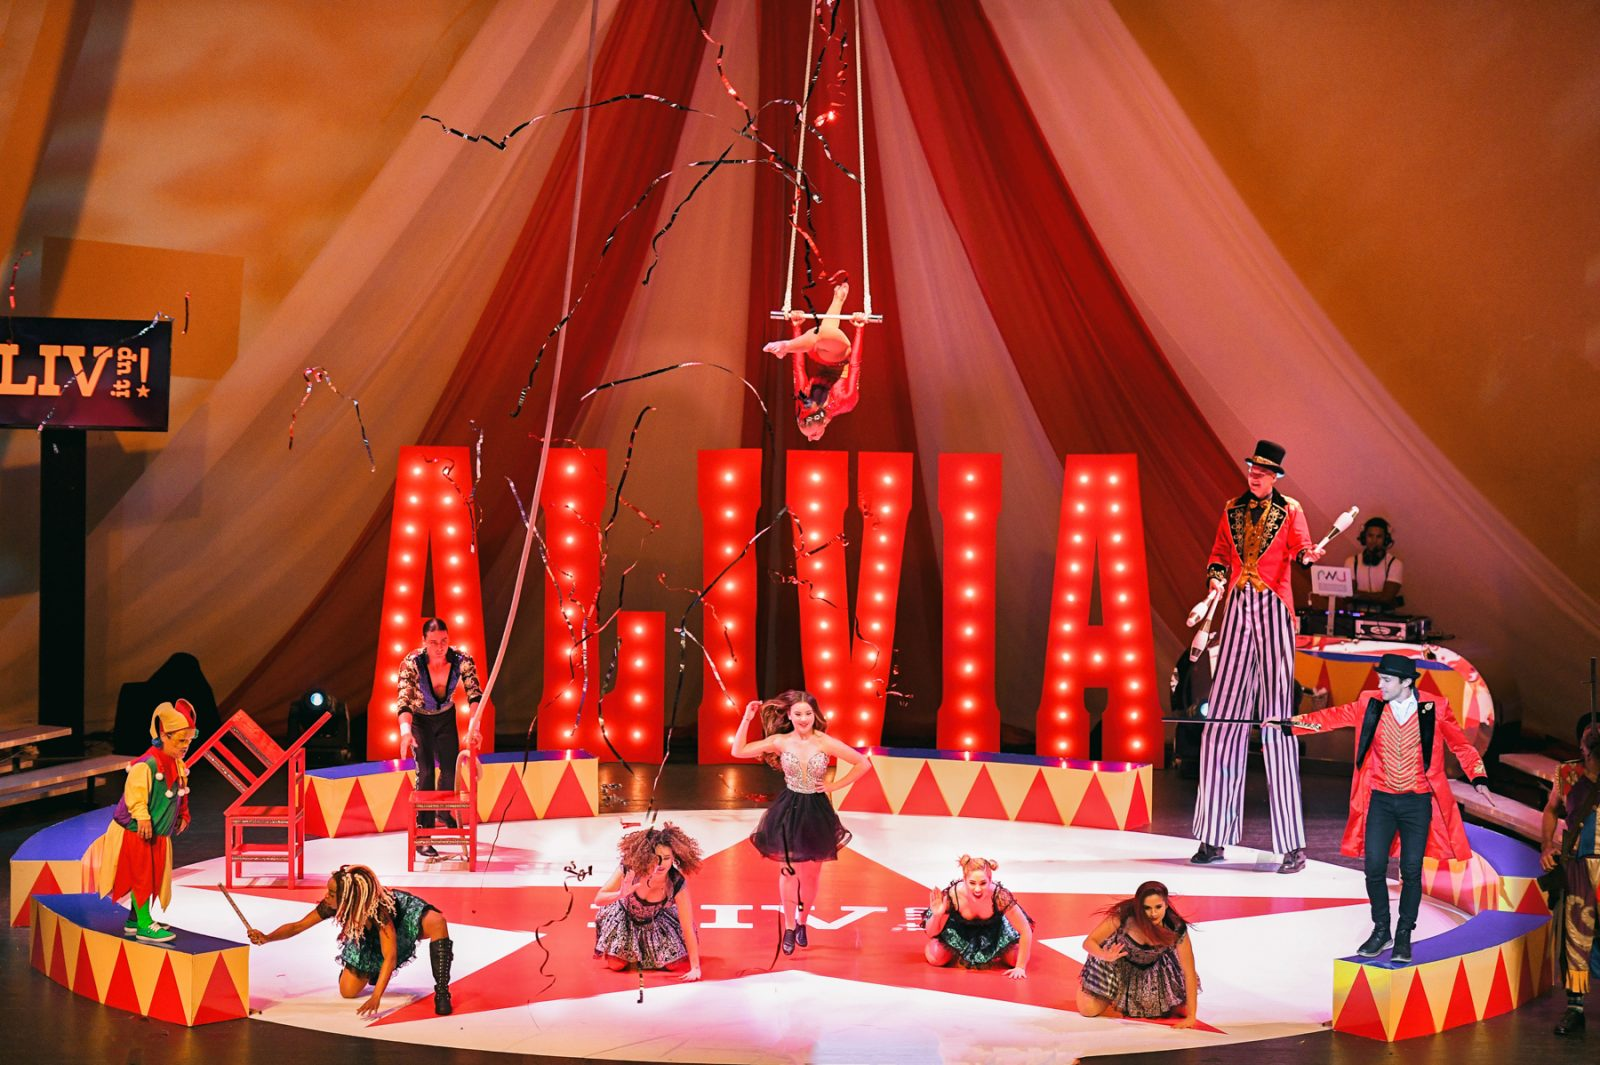 circus performers at The Greatest Showman theme Bat Mitzvah at the filmore miami by Domino Arts Photography